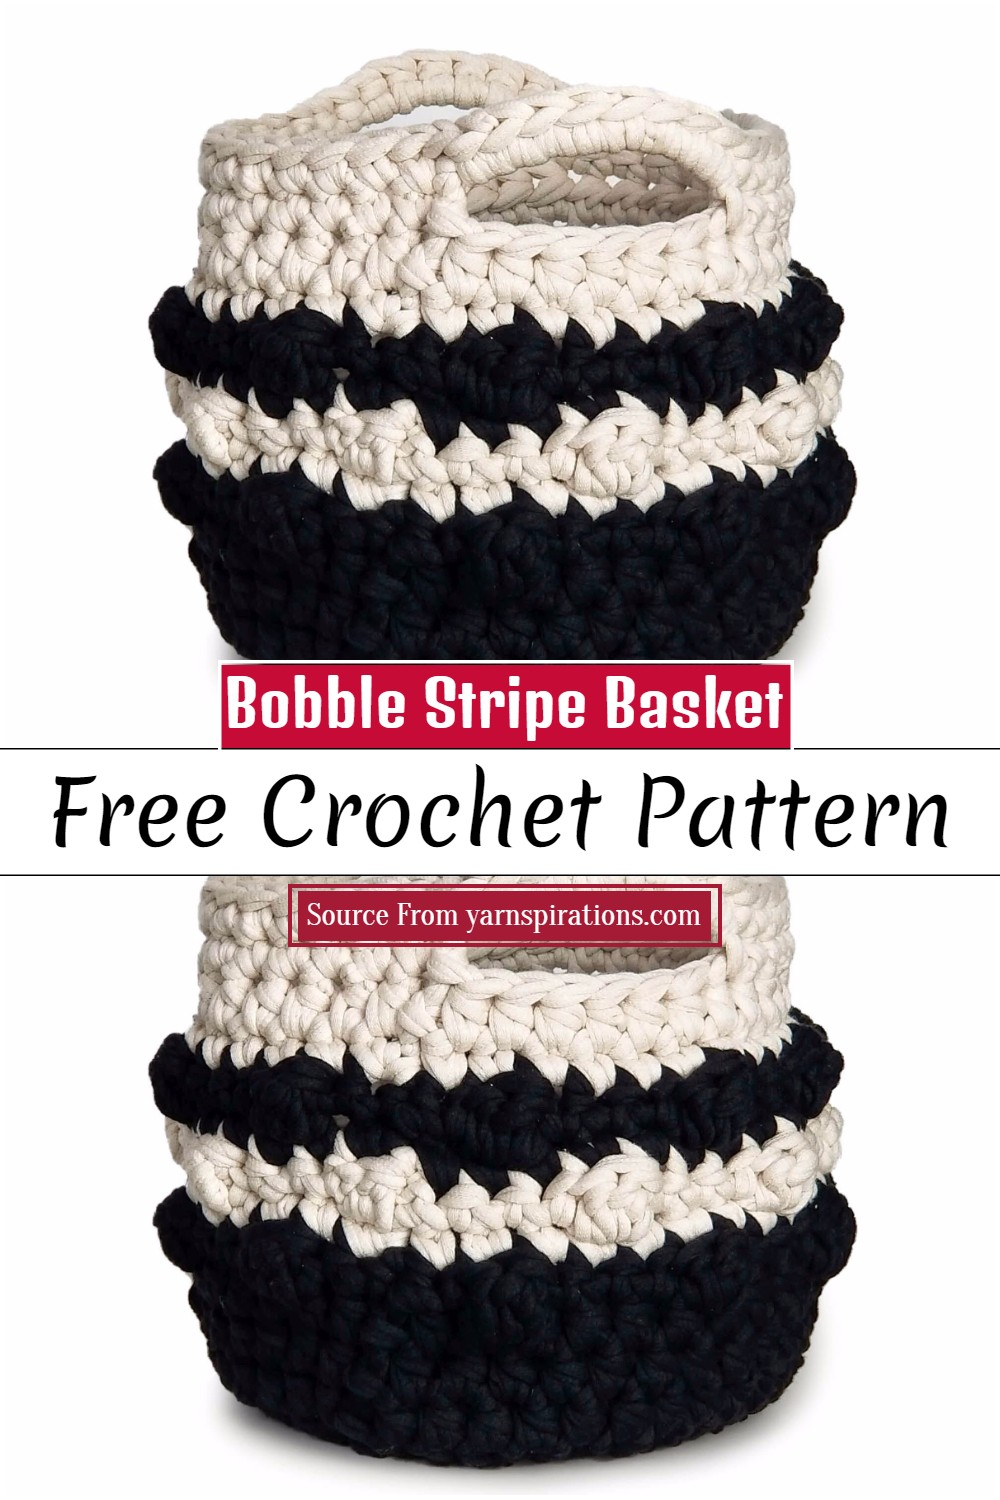 Crochet Bobble Stripe Basket Pattern